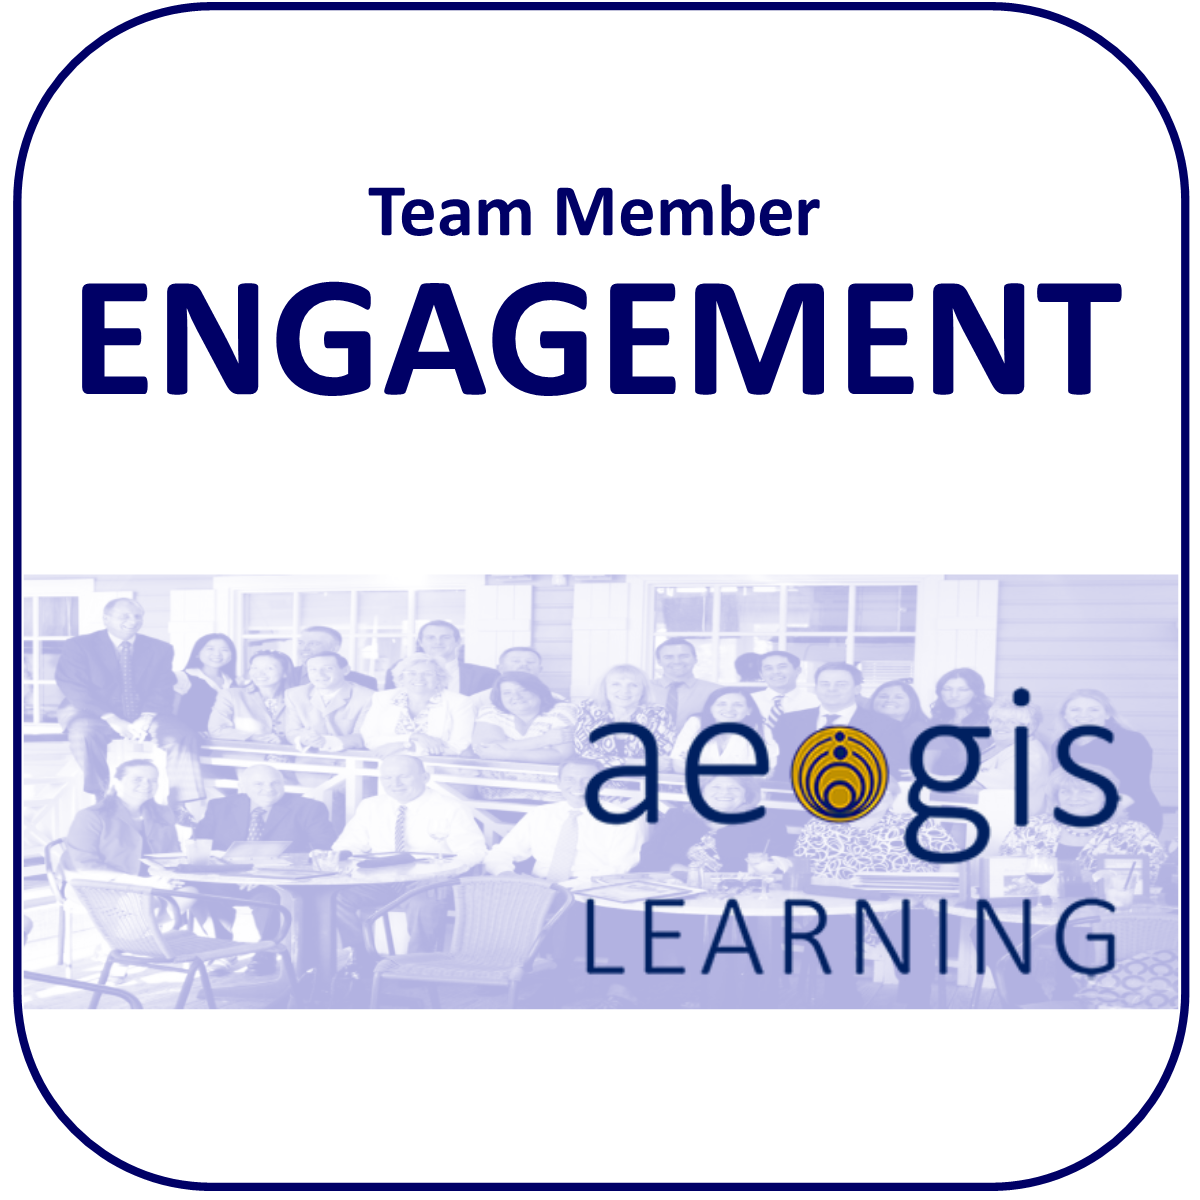 Team Member Engagement from Aegis Learning